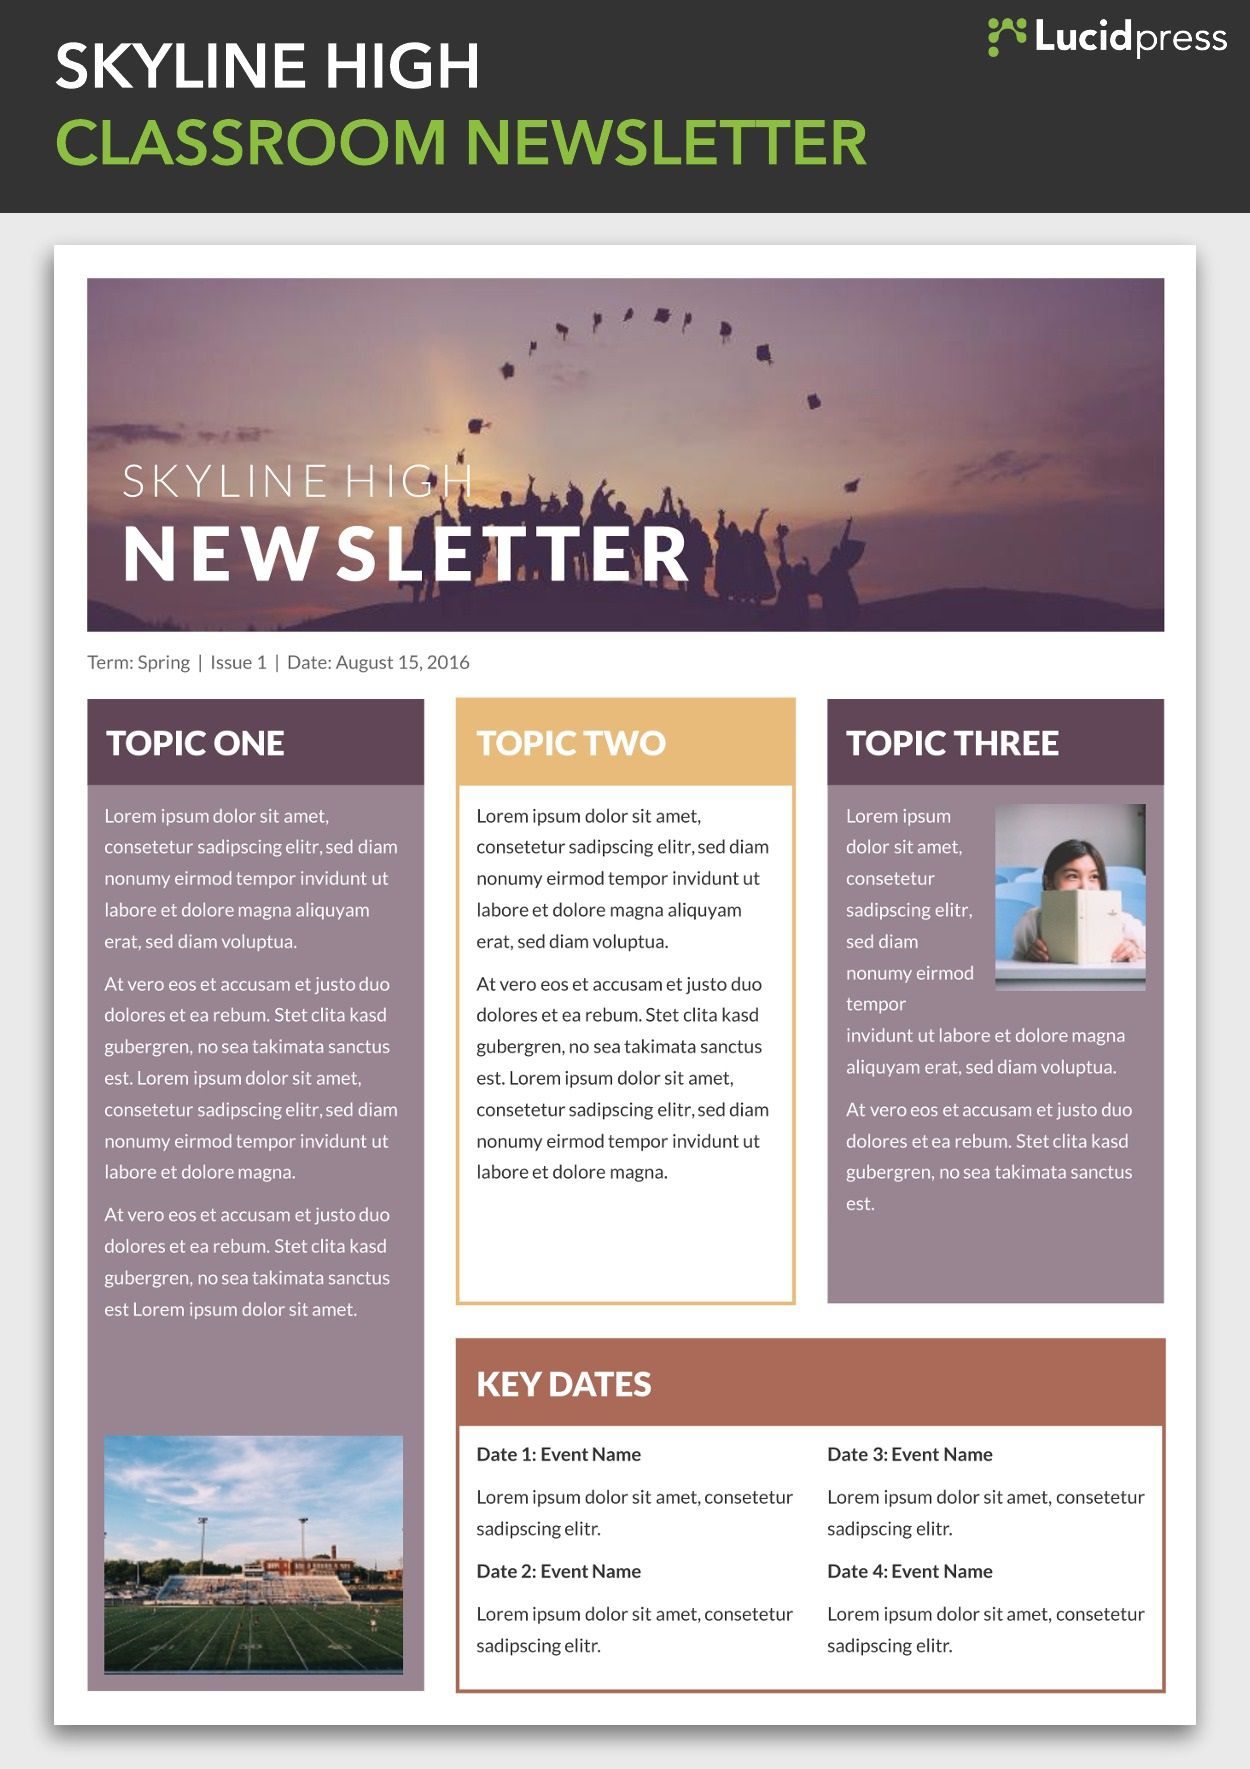 004 Simple School Newsletter Template Free Photo  Publisher Editable CounselorFull